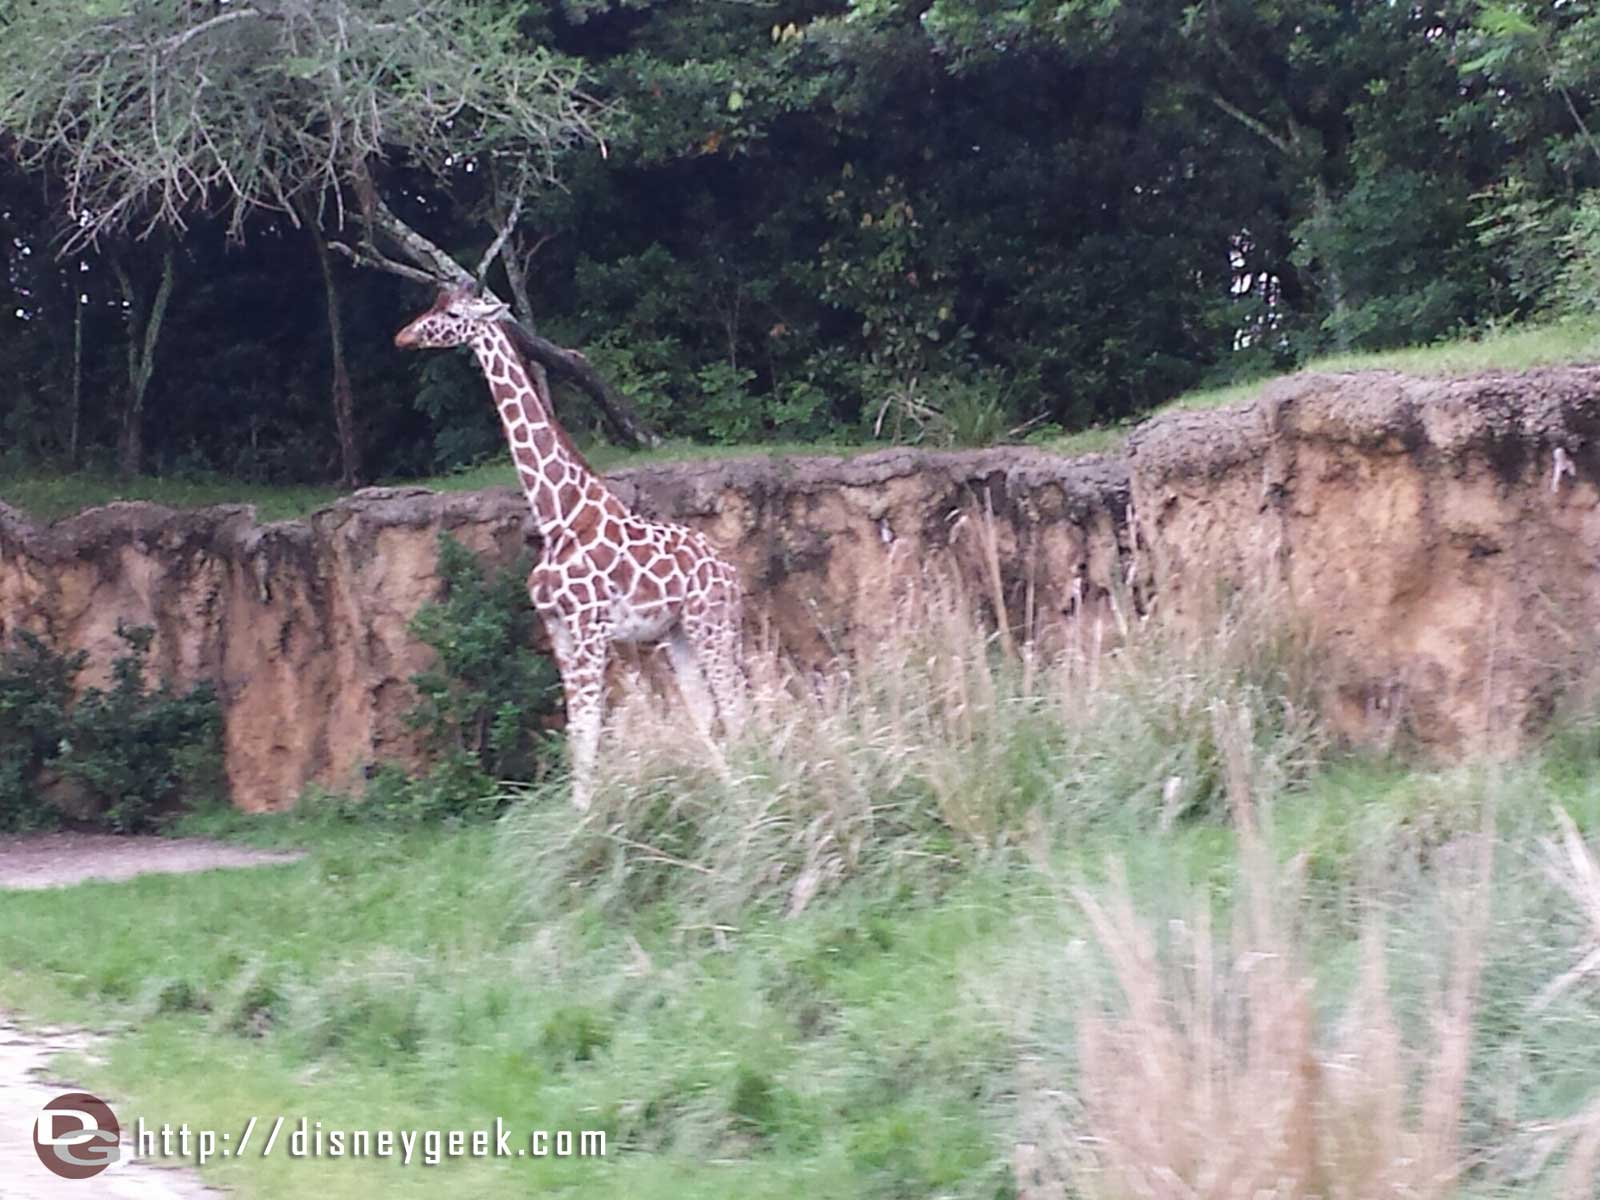 A giraffe on the Kilimanjaro Safari at Disney's Animal Kingdom